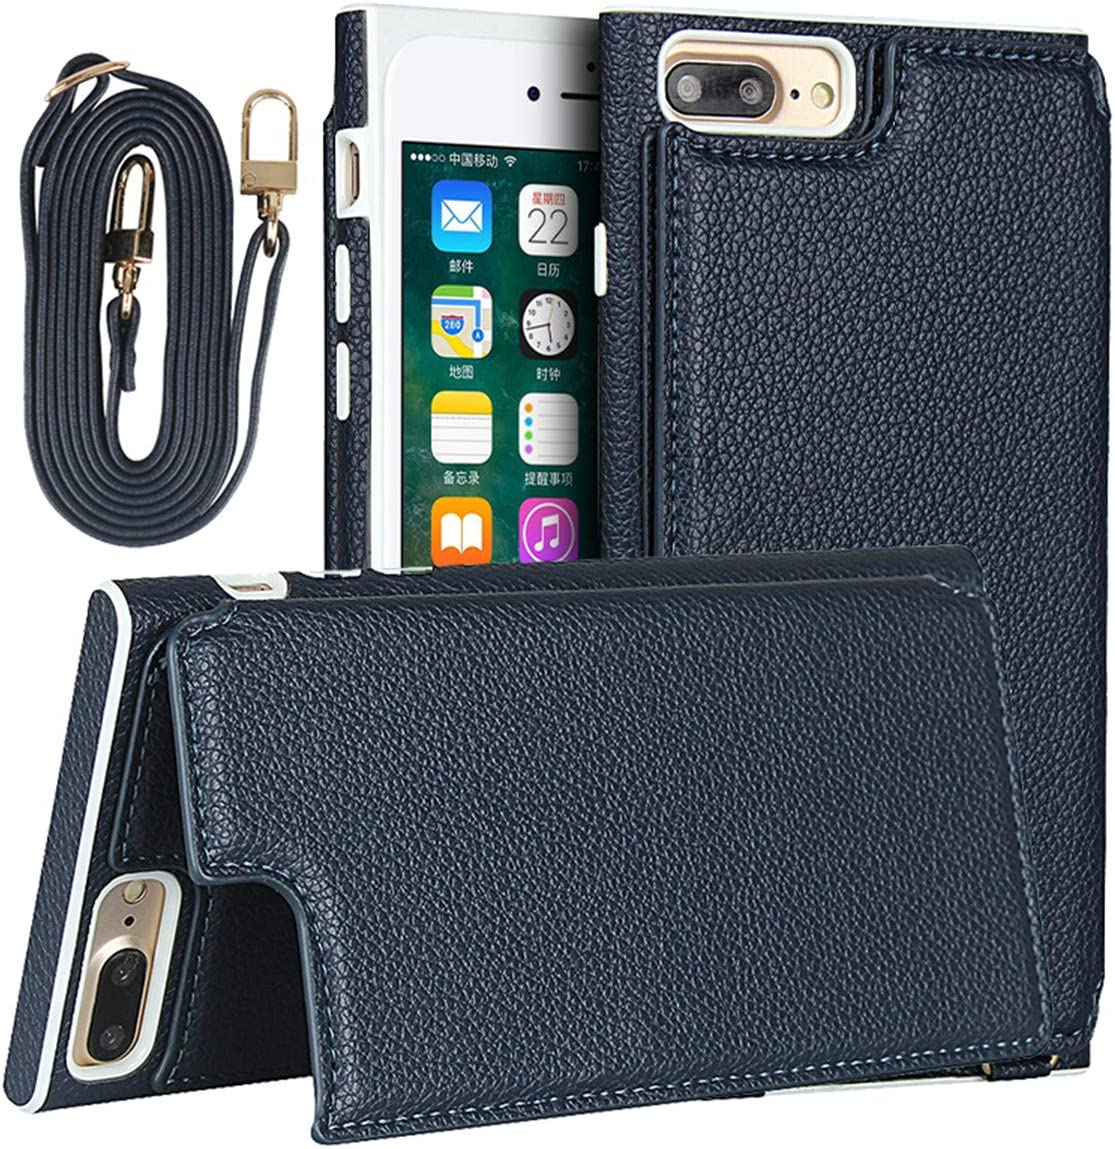 iCoverCase for iPhone 6 Plus/6s Plus/7 Plus/8 Plus Wallet Case with Lanyard, Magnetic Clasp Shockproof Bracket Leather Case with Card Slot and Hidden Mirror (Blue)